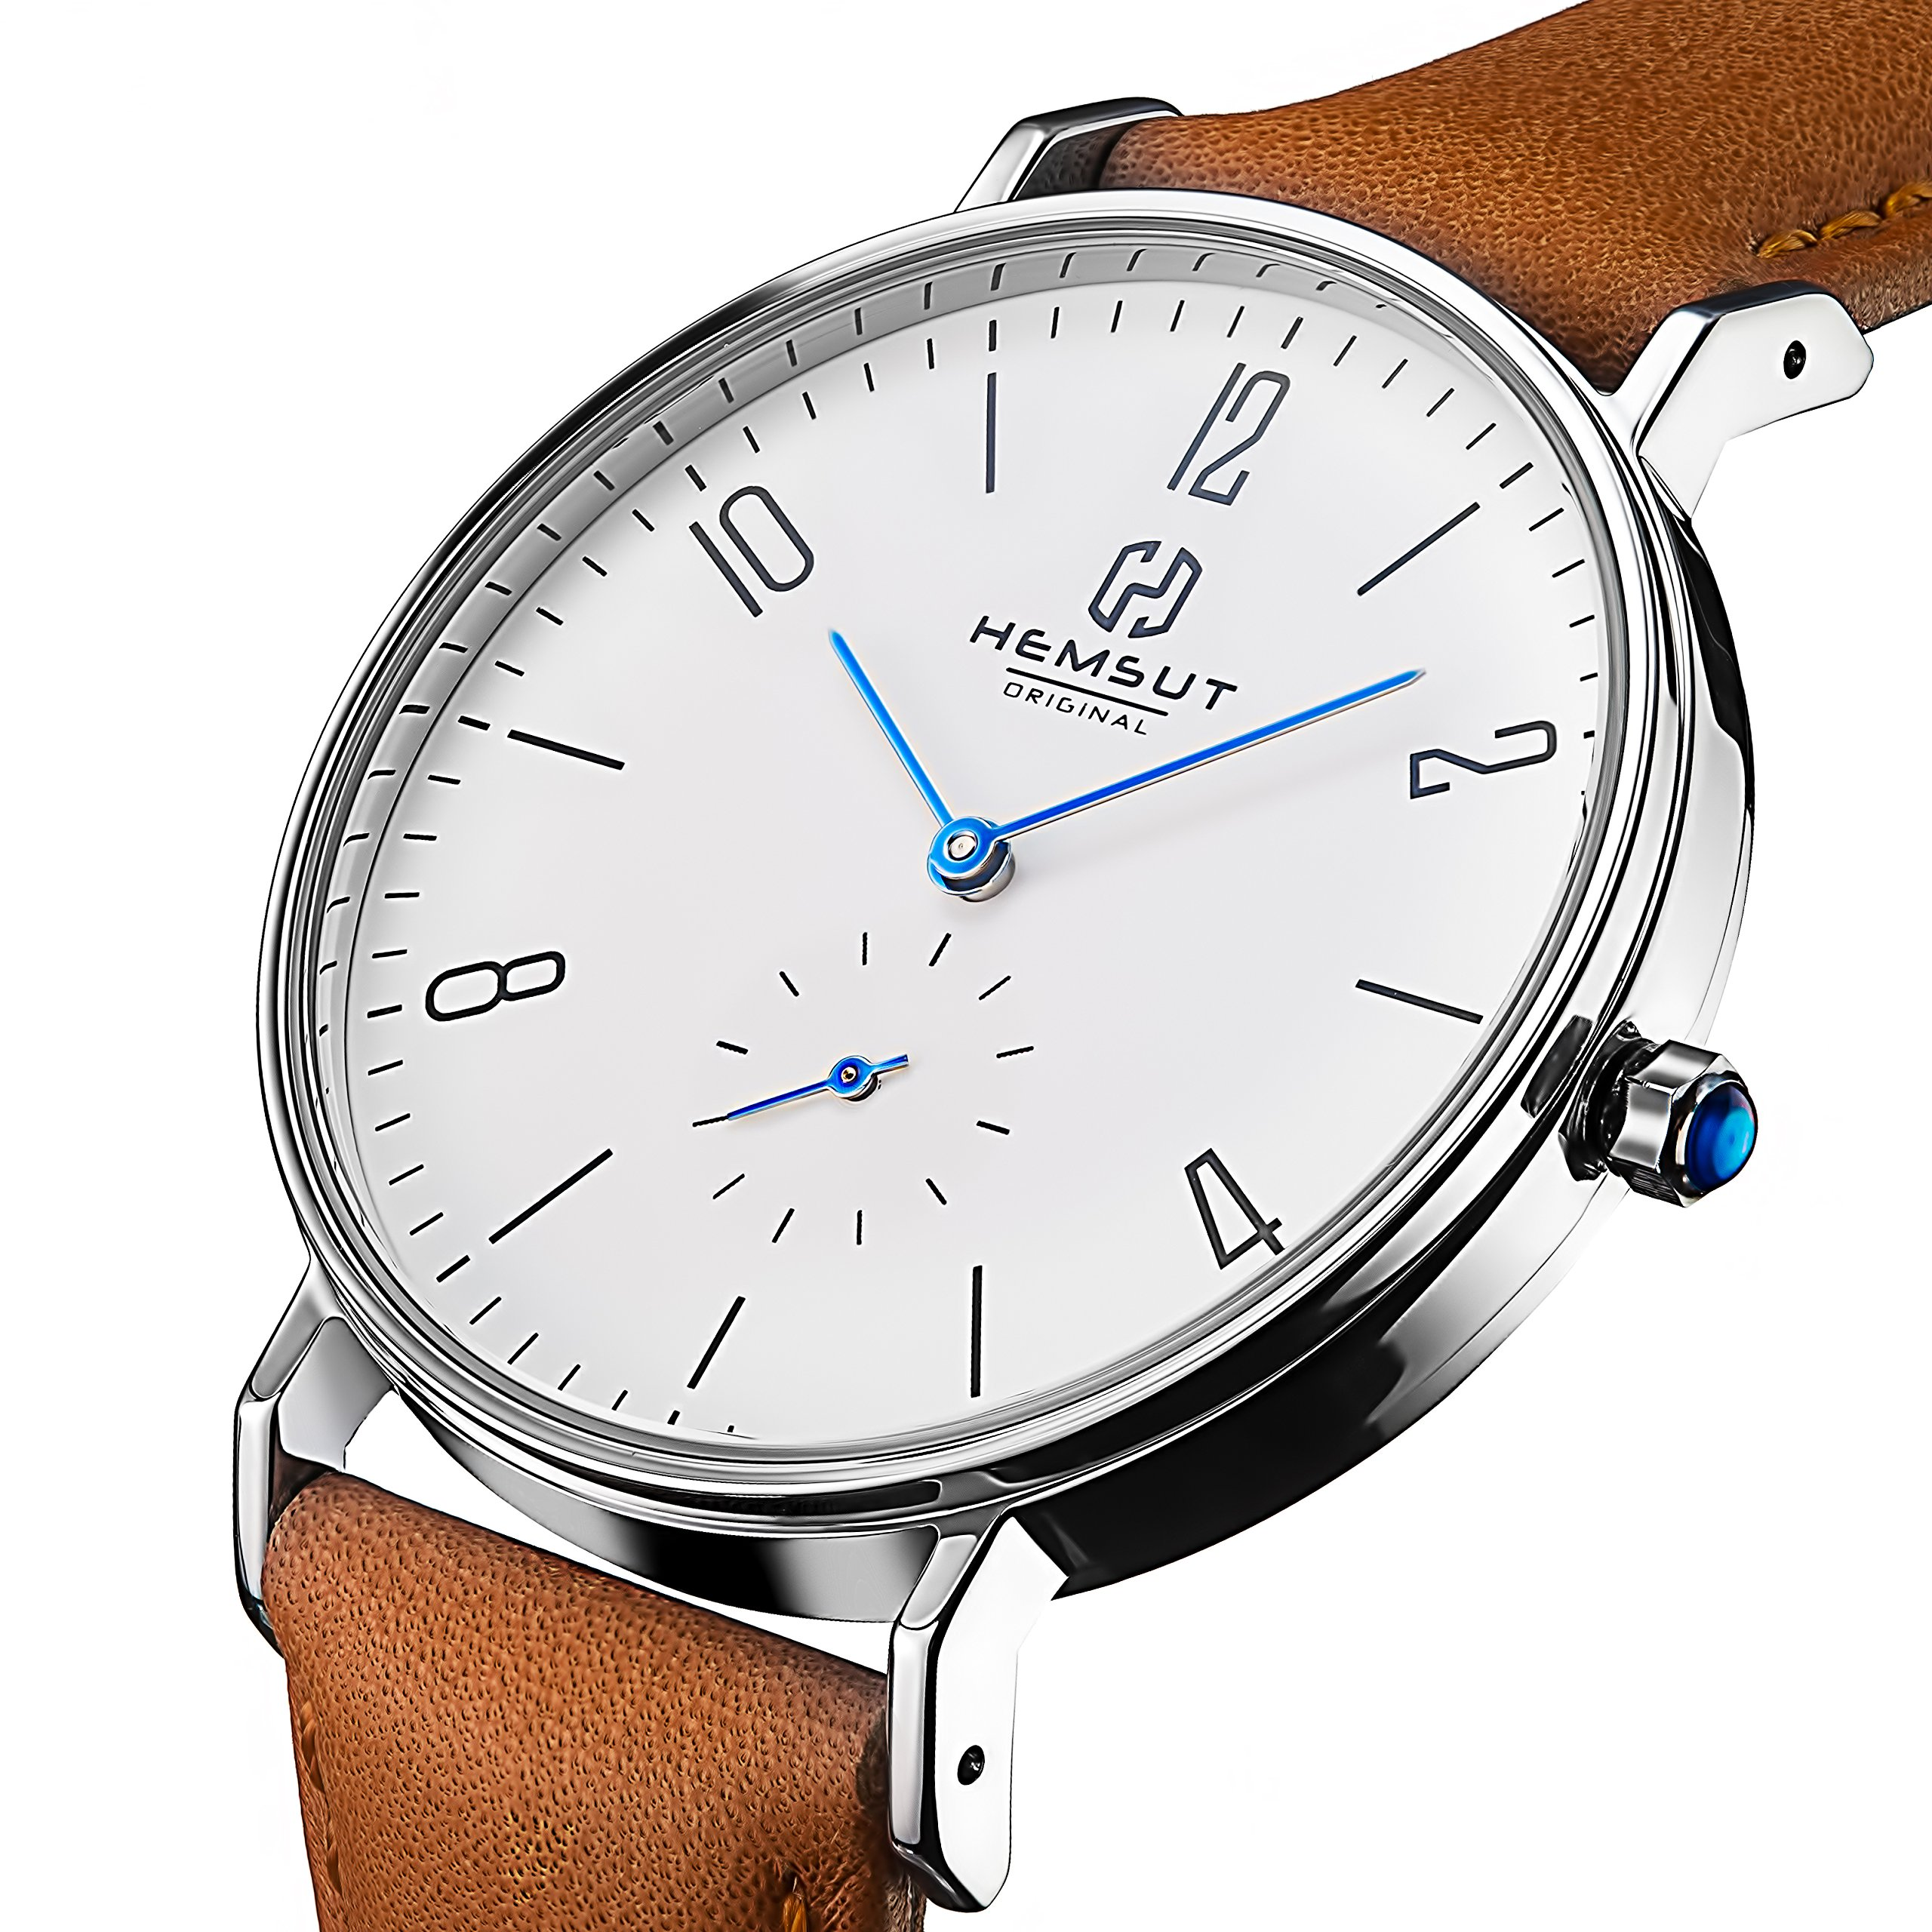 Watches for Men Black - Mens Watch Stainless Steel Waterproof - Mens Watches Cheap - Wrist Watches Leather - Quartz Watch Second Deal